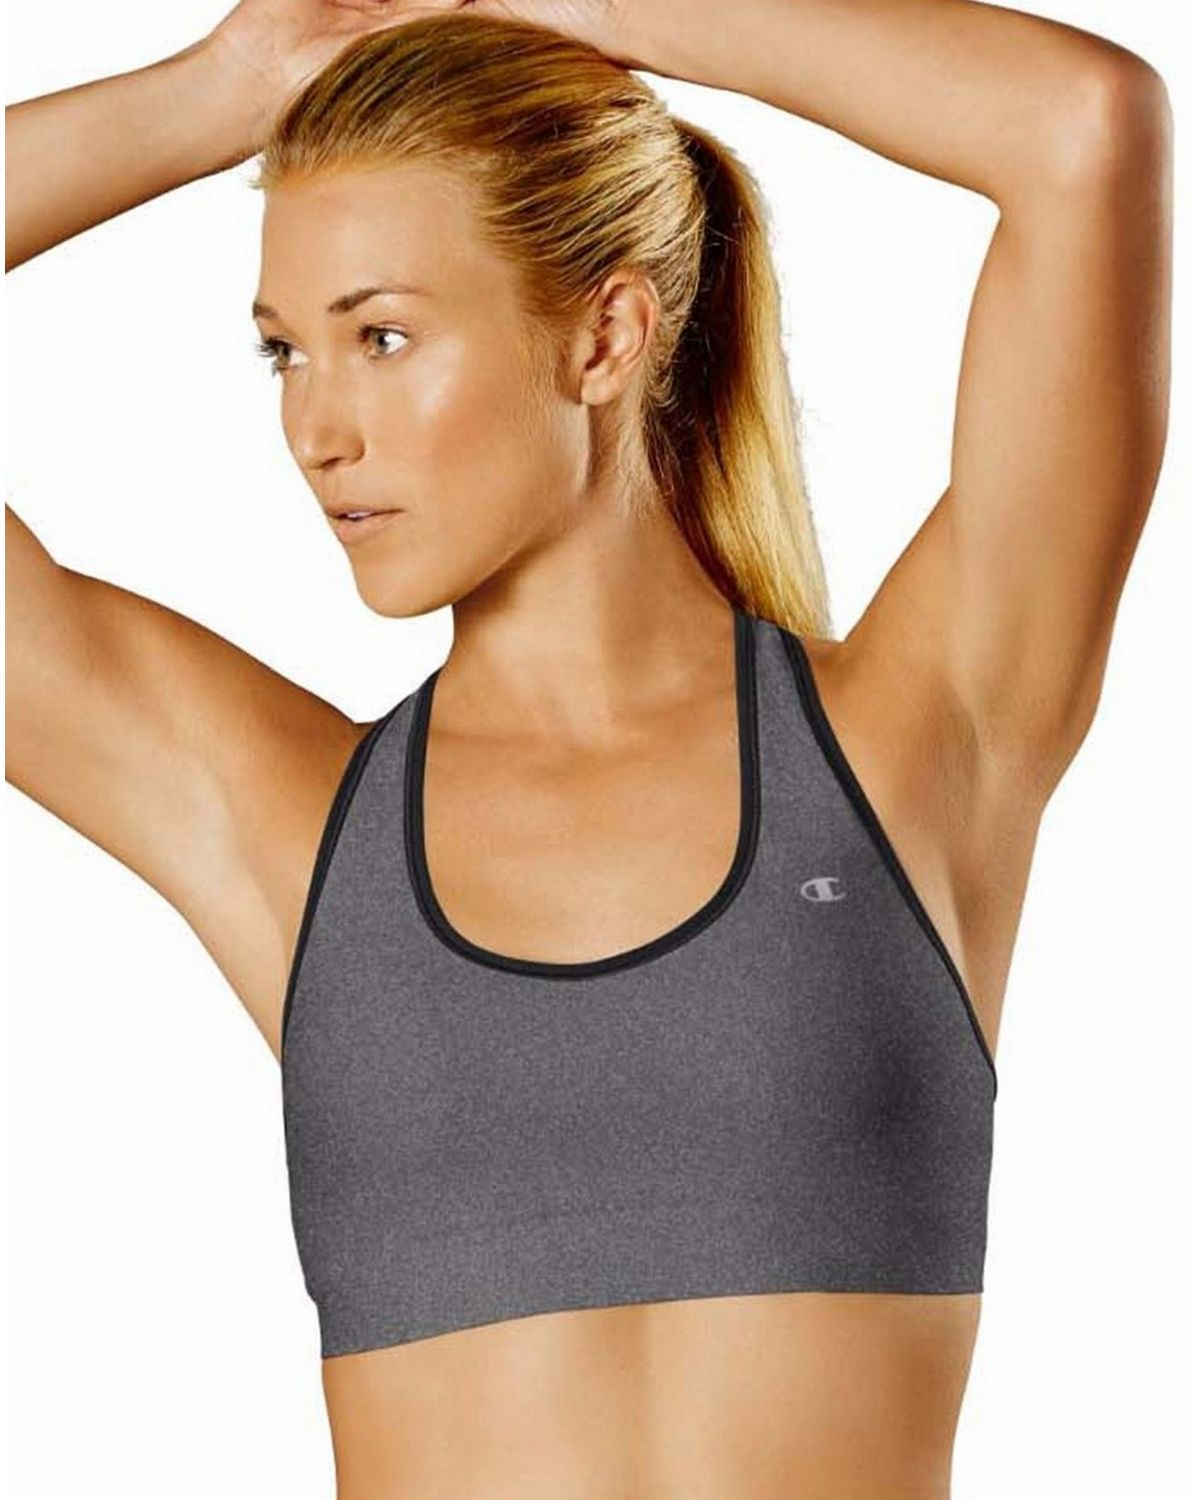 Champion B9504 Absolute Racerback Sports Bra - Granite Heather/Black - M B9504